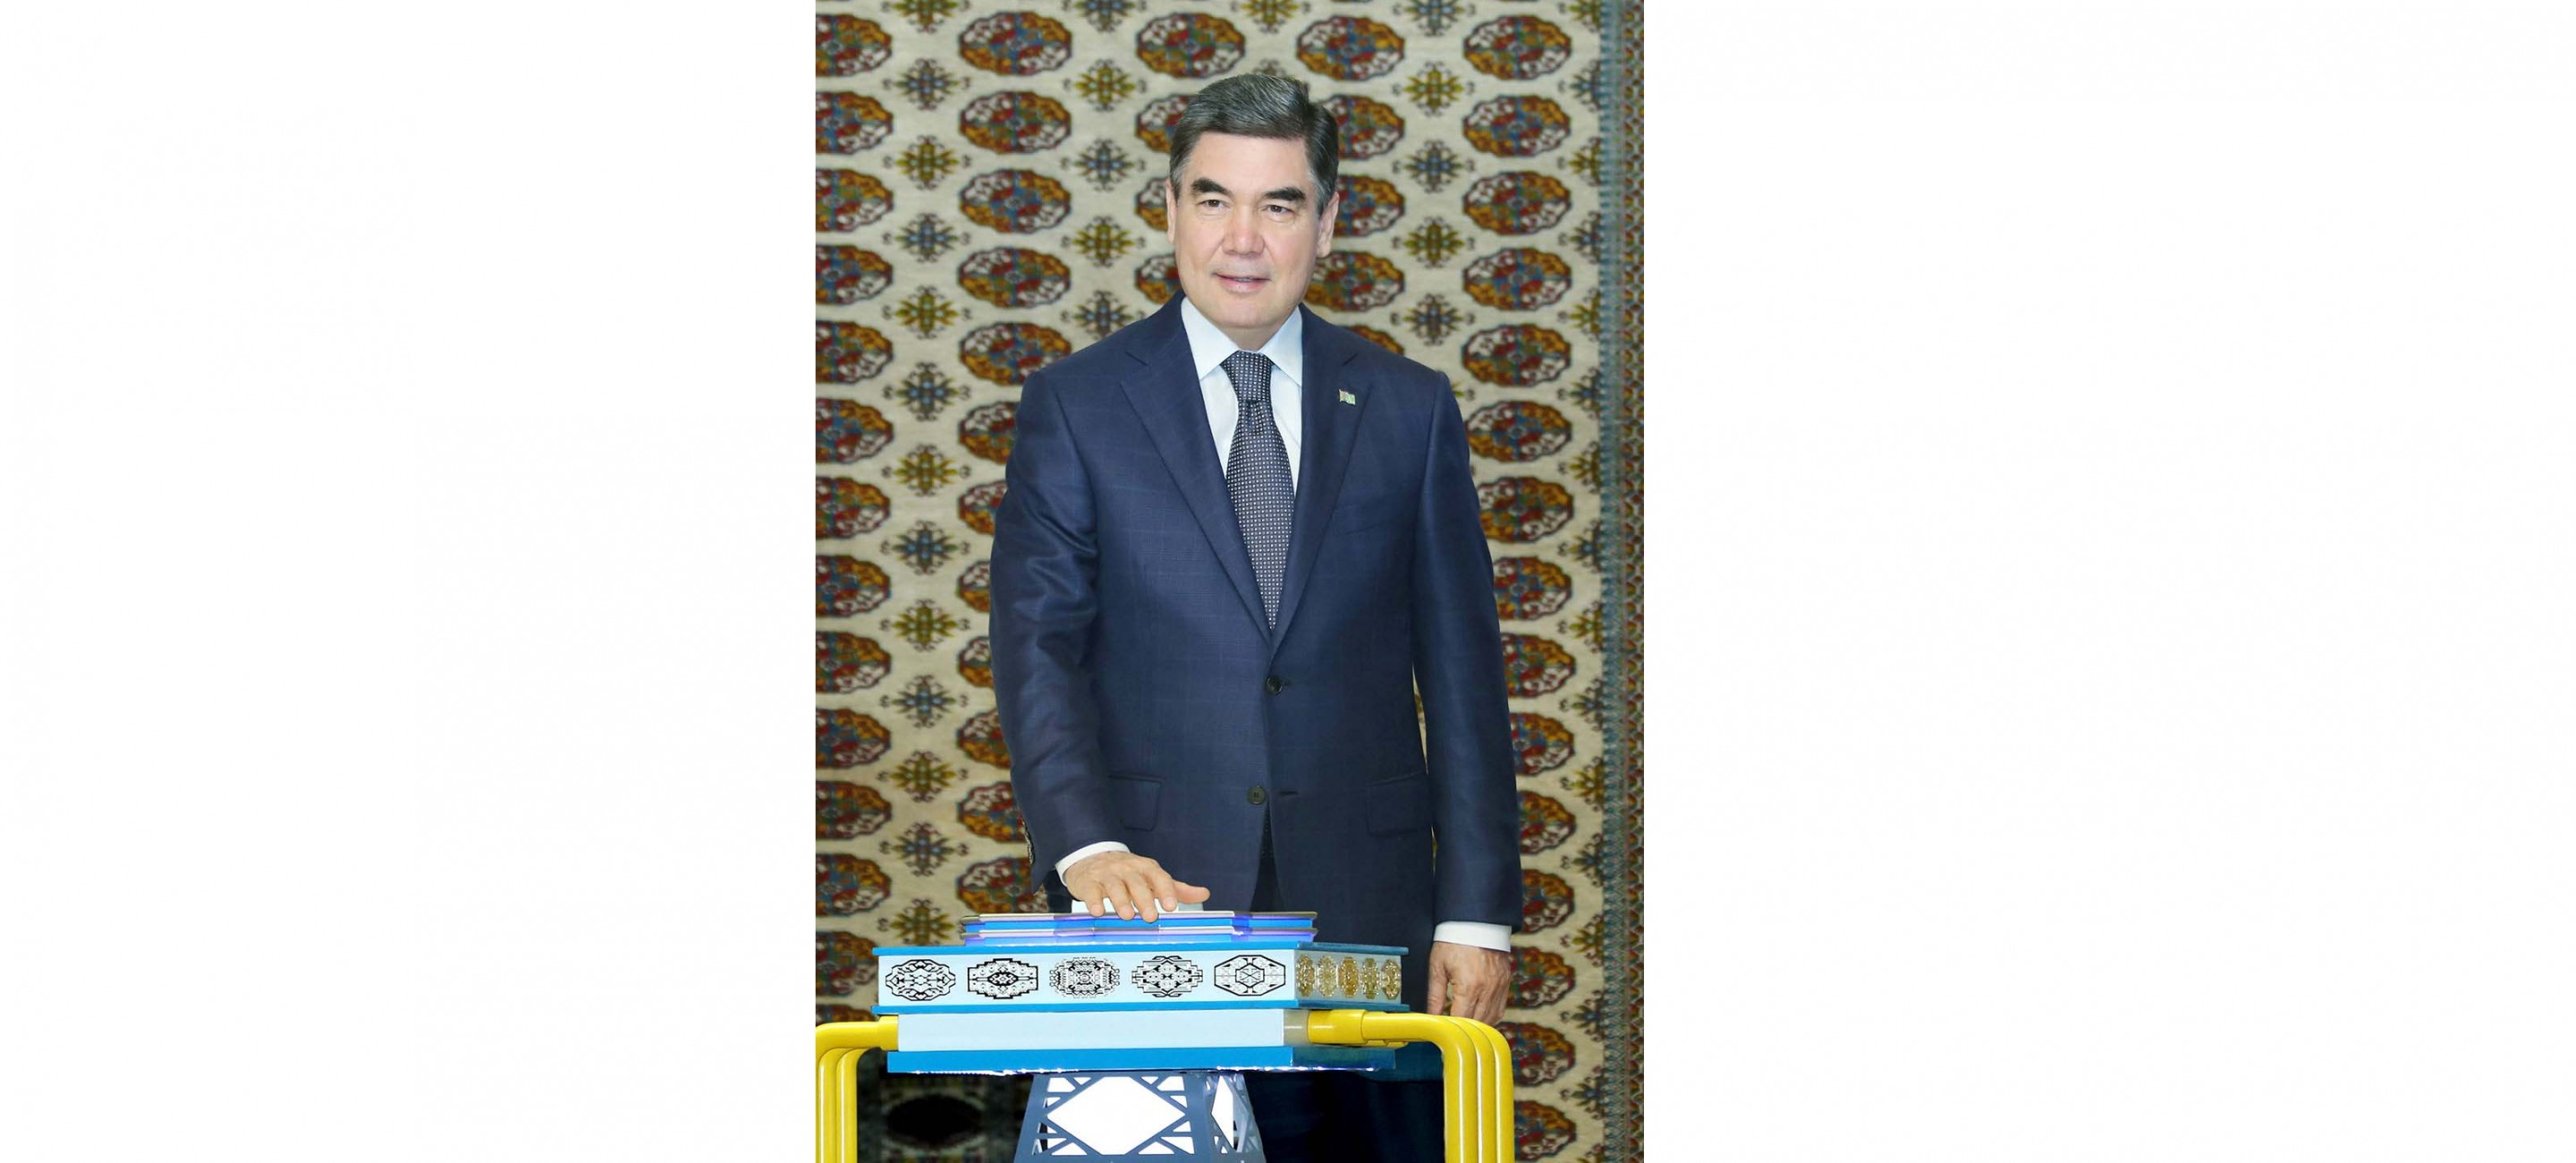 A gas chemical complex was opened in Kiyanly with the participation of the President of Turkmenistan